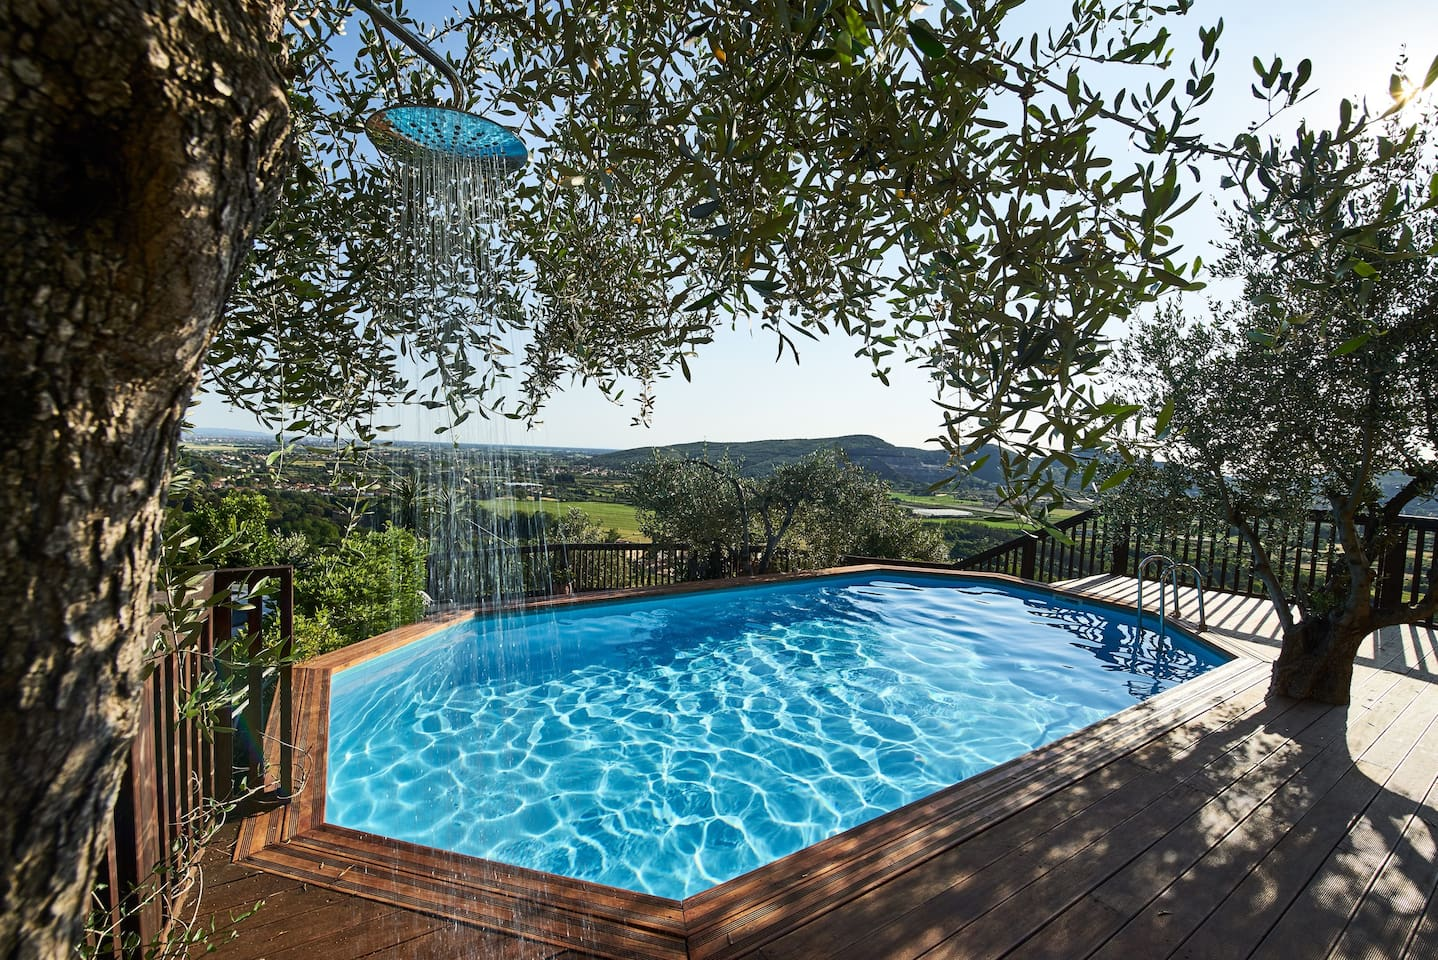 Fantastic salt water swimming pool with it's own unique olive tree shower!!  Split level spacious decking area for sun bathing, lounging and relaxing at all times of the day. Offering great views of The Leaning Tower of Pisa and Mediterranean Sea.